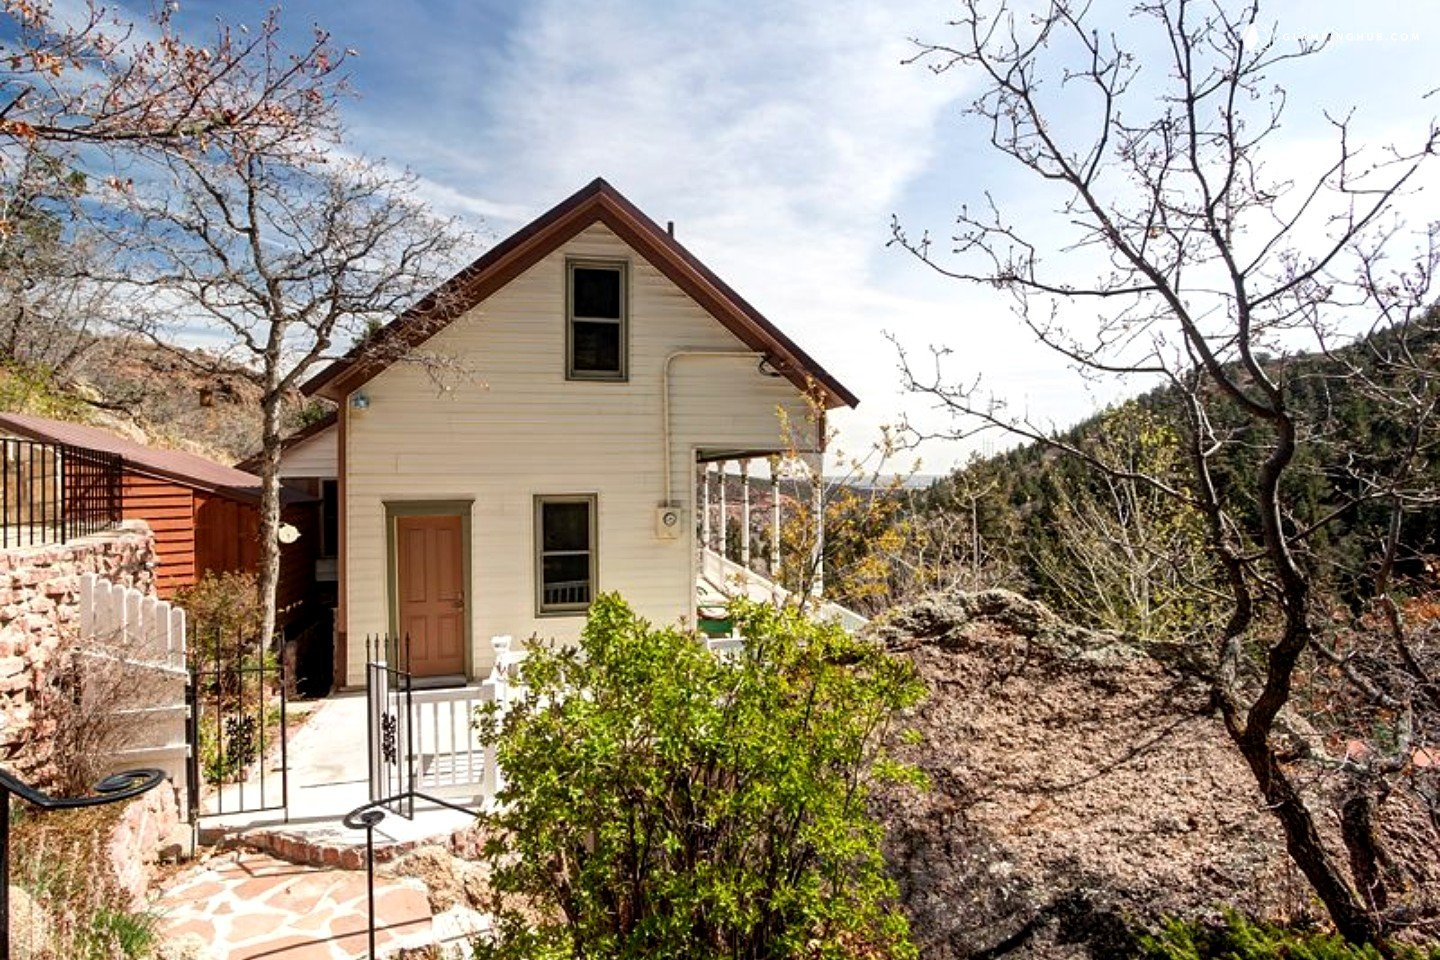 mountain cabin rental near manitou springs colorado